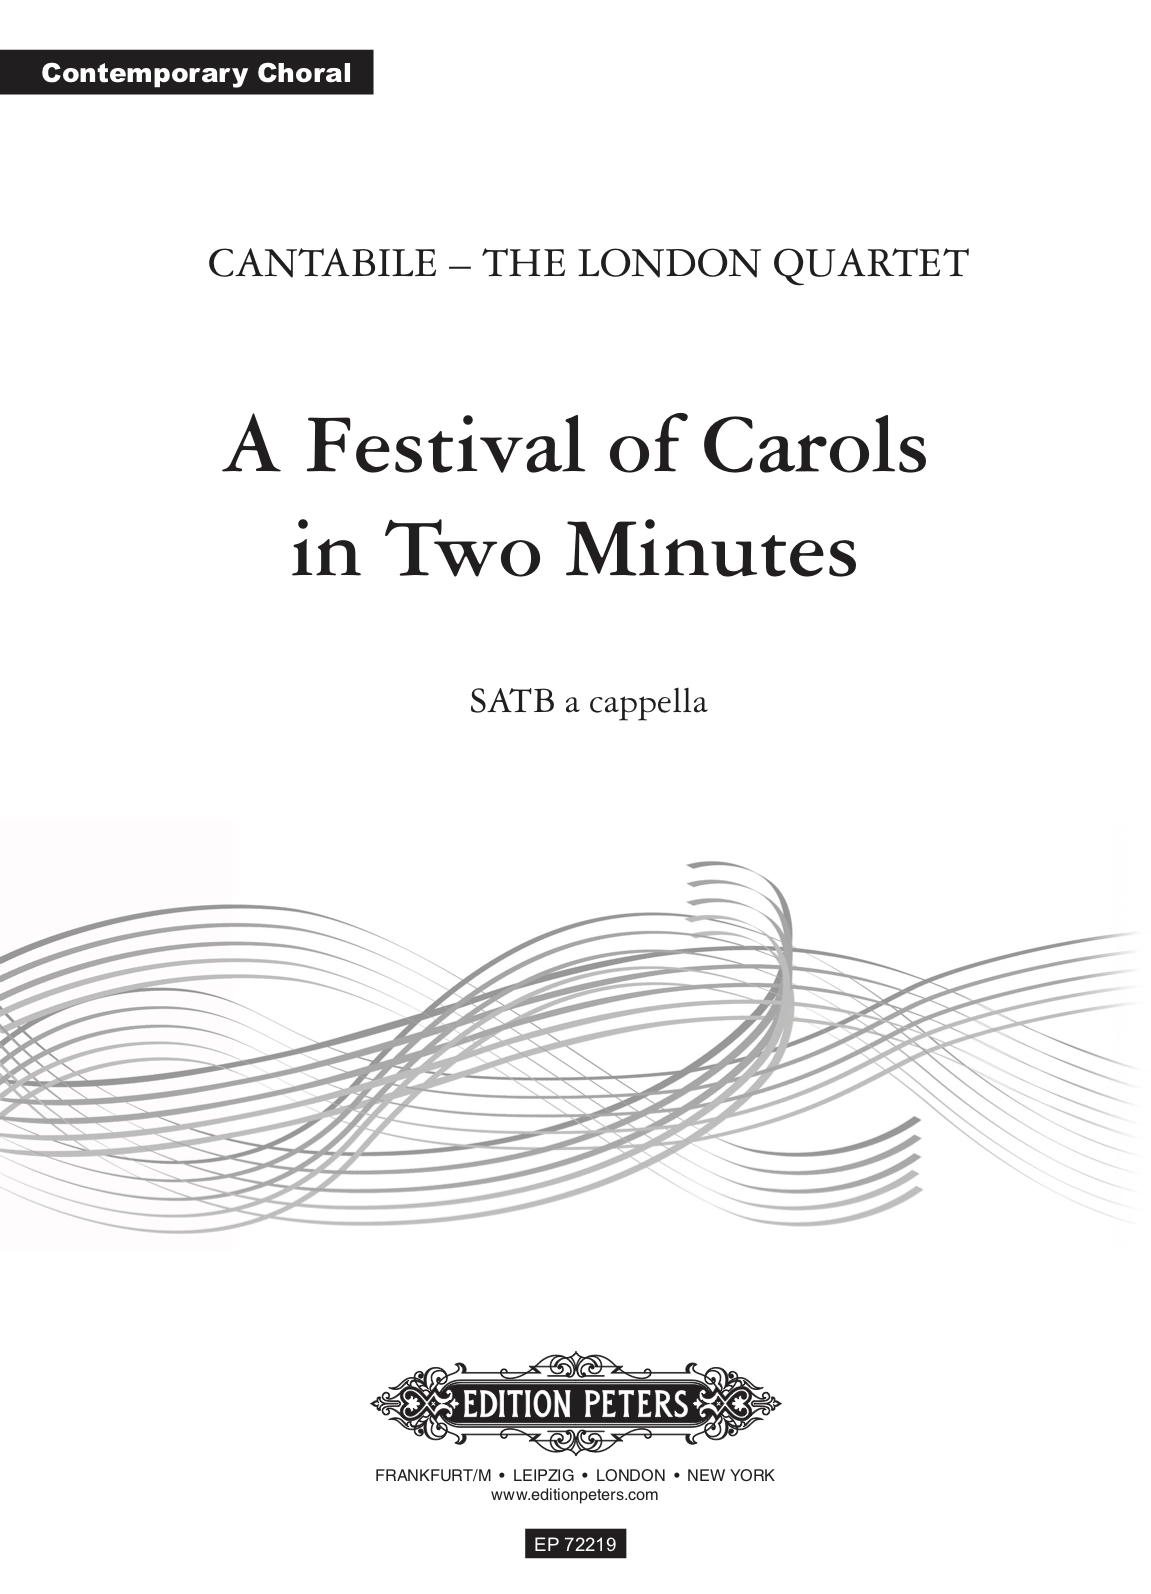 A Festival of Carols in Two Minutes.jpg